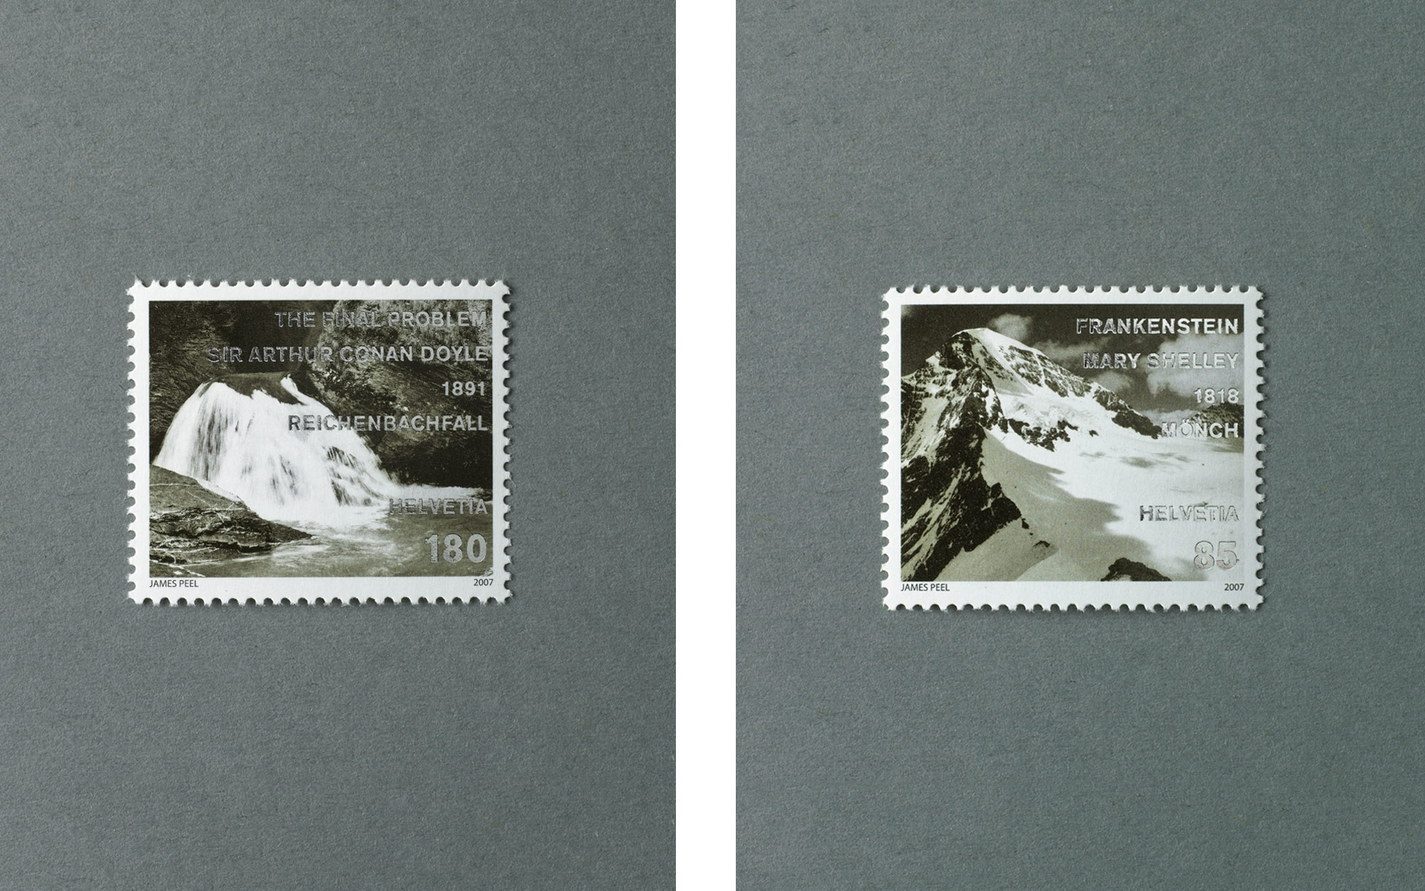 bob-design-swisspost-stamp5-67342.jpg